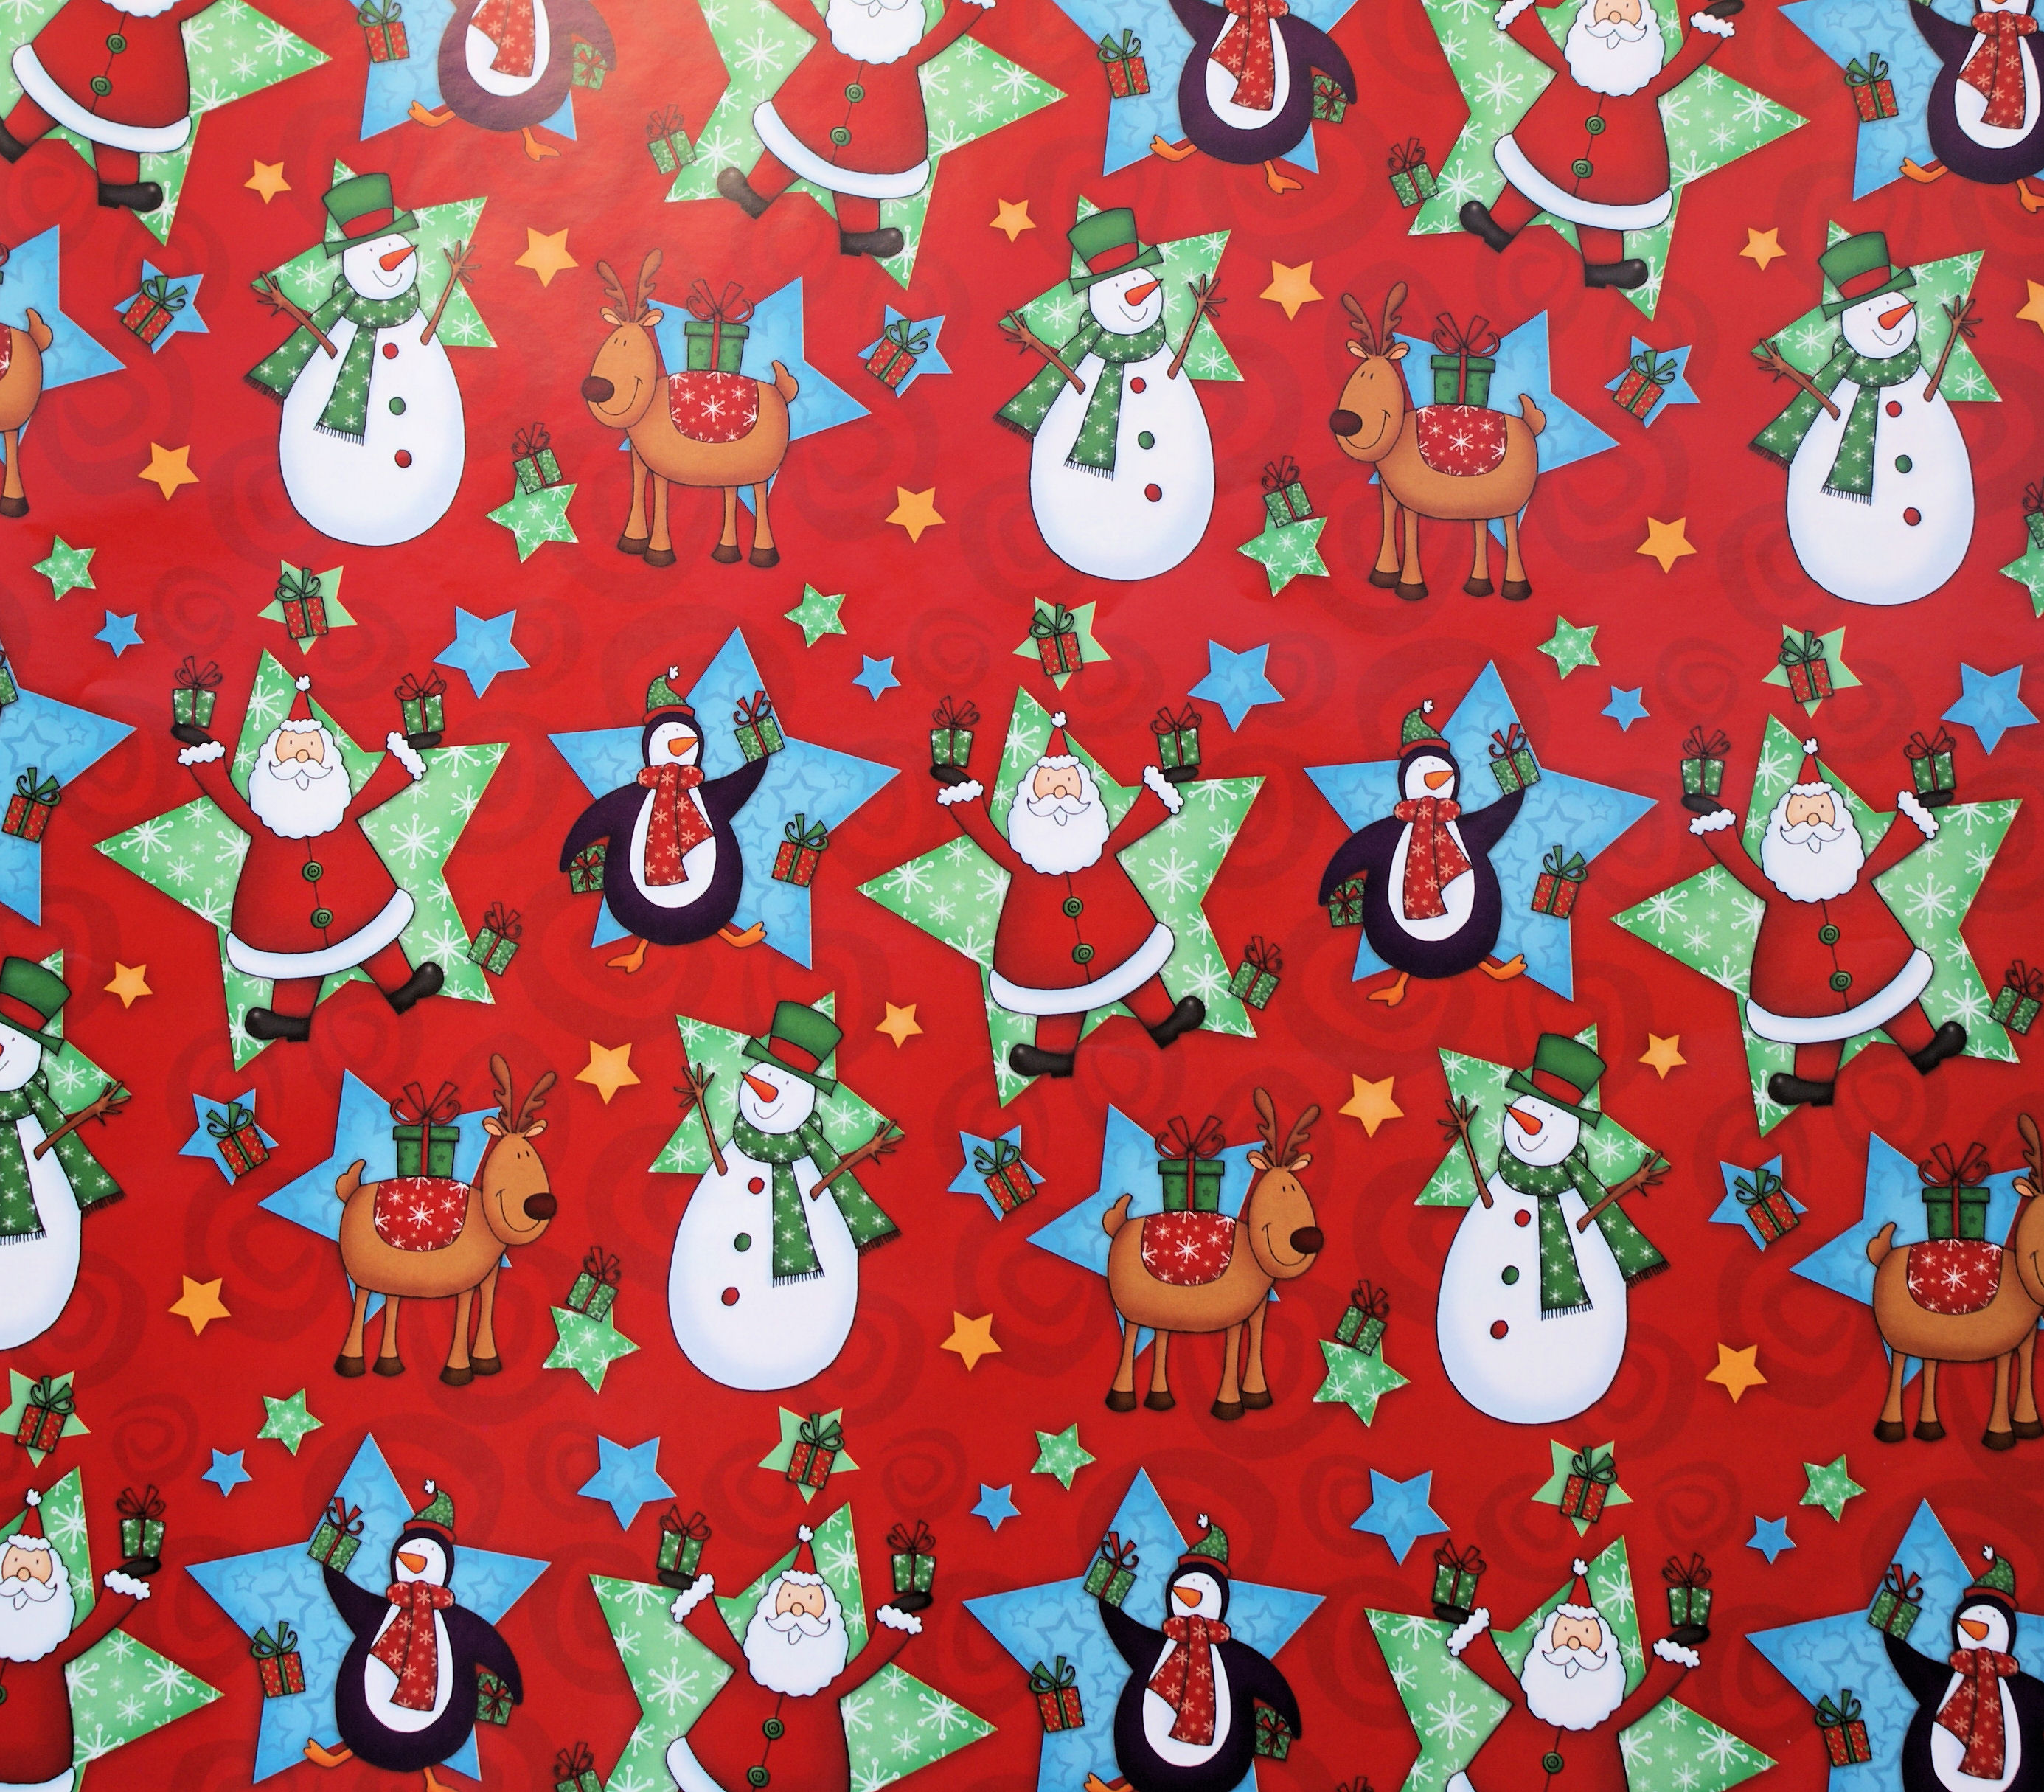 Gallery For gt Holiday Wrapping Paper Design